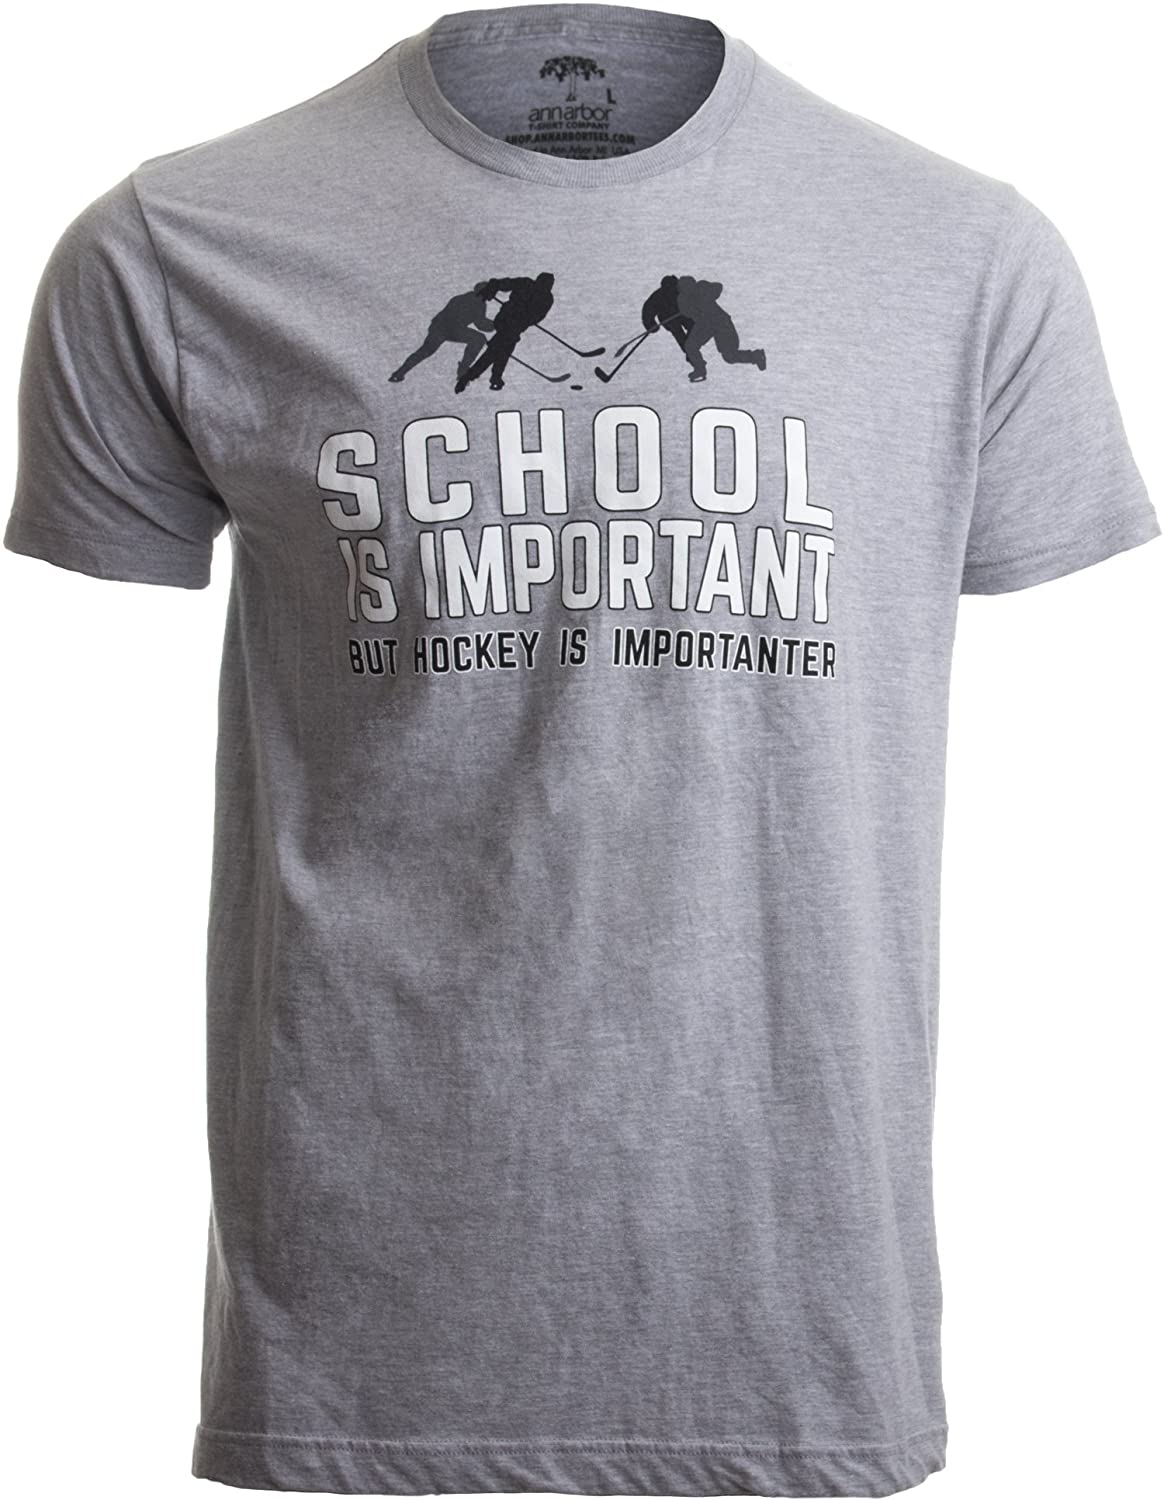 Ann Arbor T-shirt Co. School is Important but Hockey is...